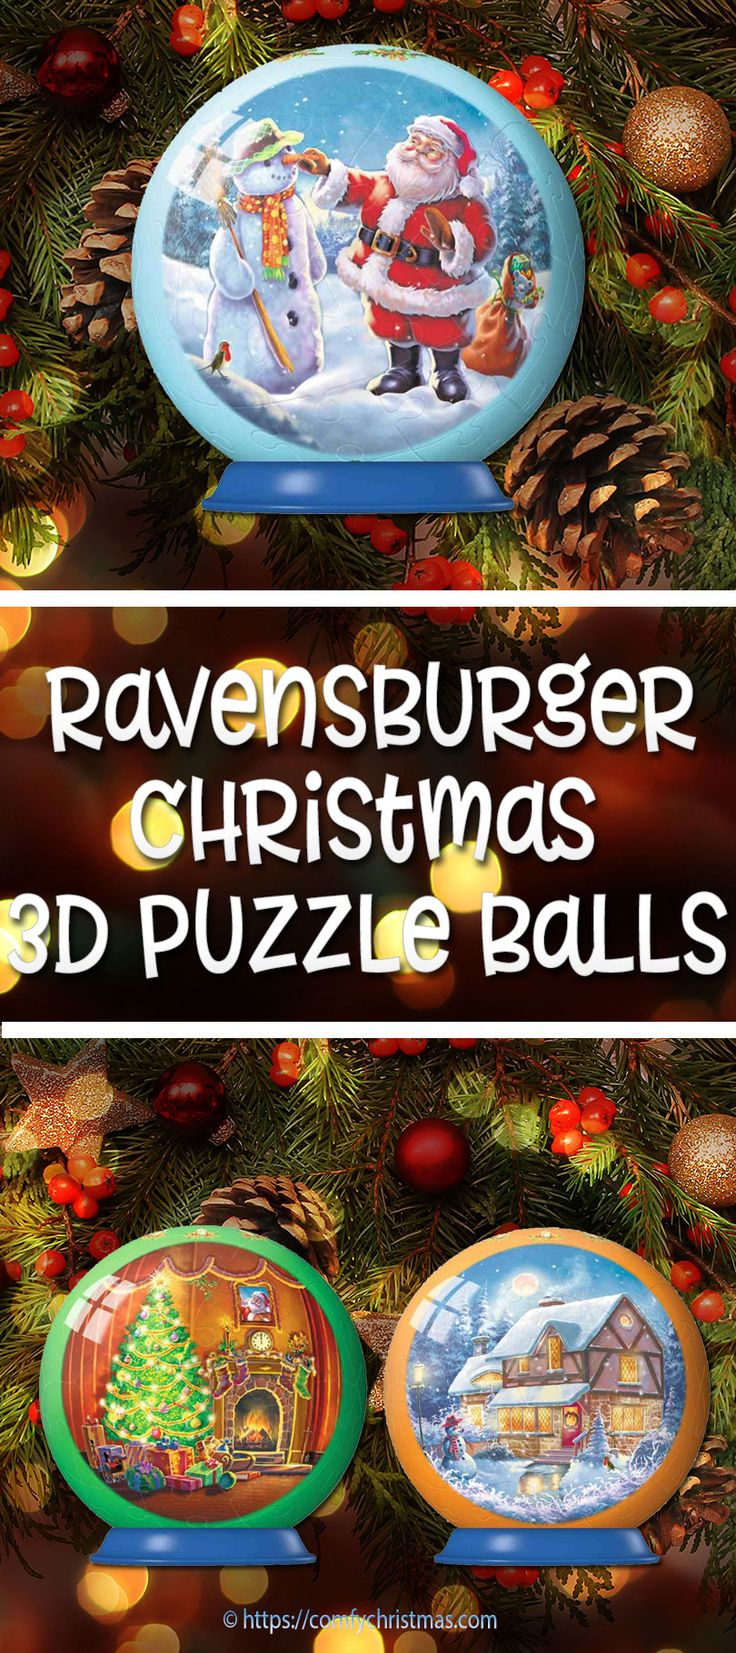 A 3D Ravensburger Christmas Puzzle Ball is not only fun to put together but also makes a cool Christmas ornament or decoration! These puzzle balls would make a neat Christmas Stocking Stuffers.